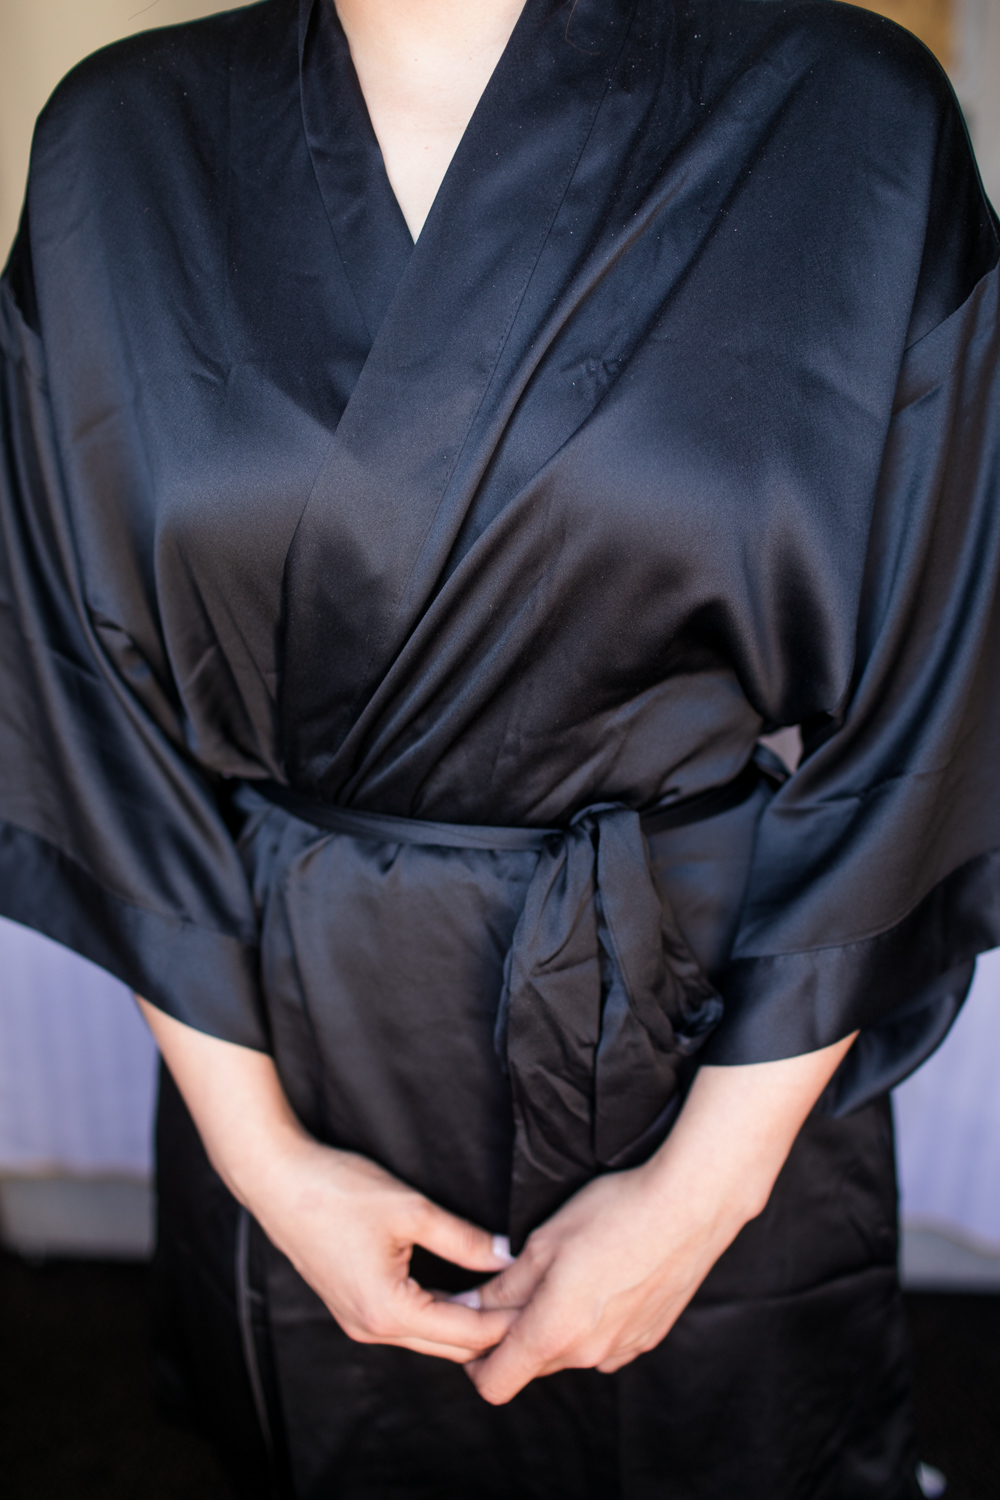 a close up of a bride in her black silk robe while getting ready for a wedding day